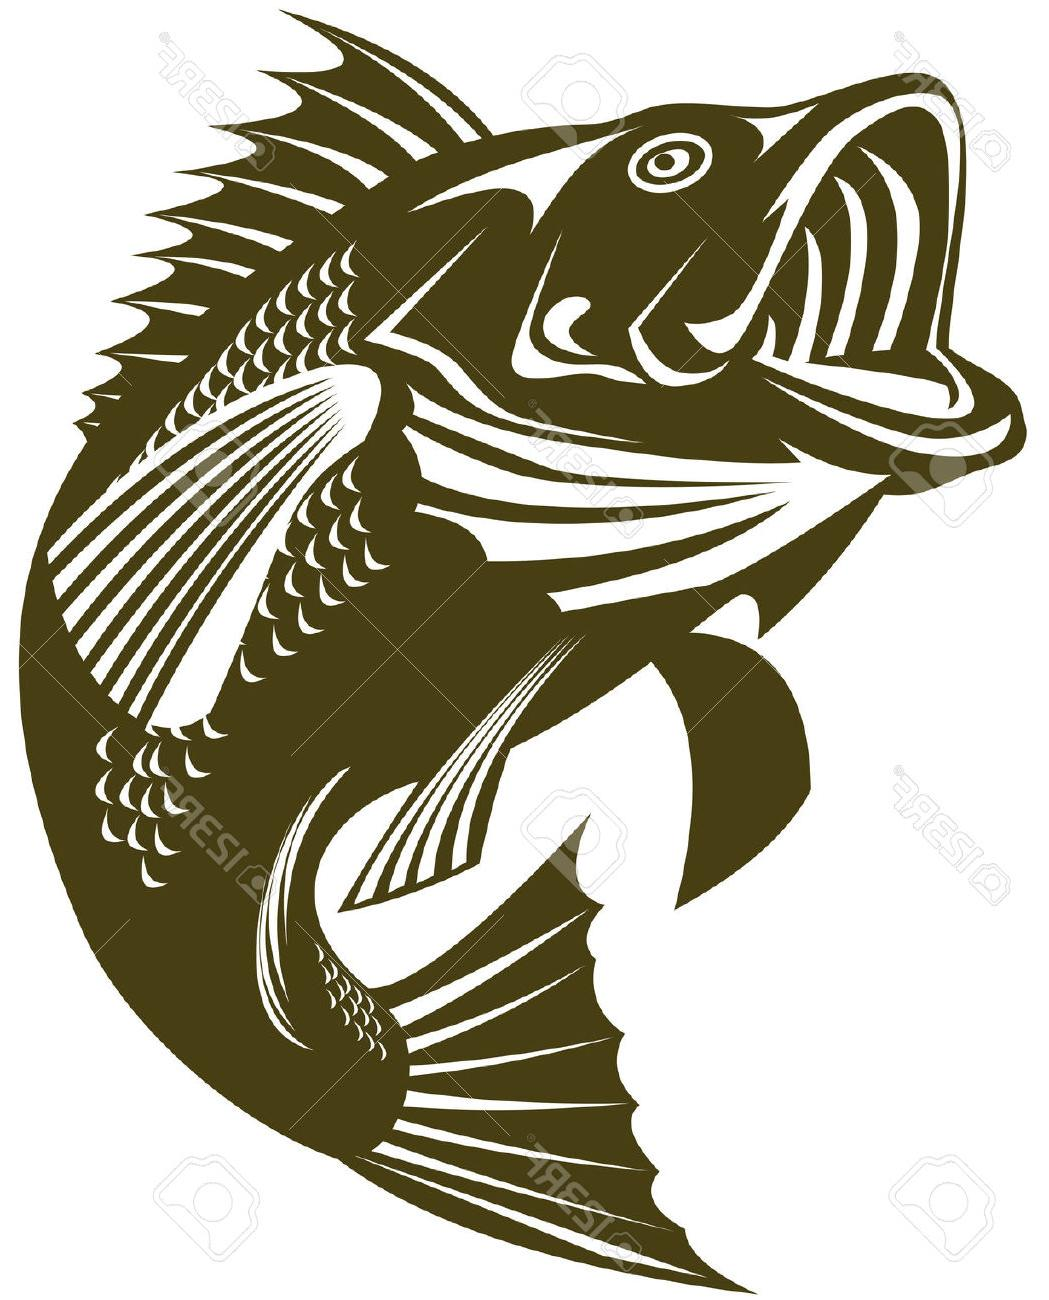 Bass fish outline clipart clip art freeuse stock Bass Fish Outline | Free download best Bass Fish Outline on ... clip art freeuse stock